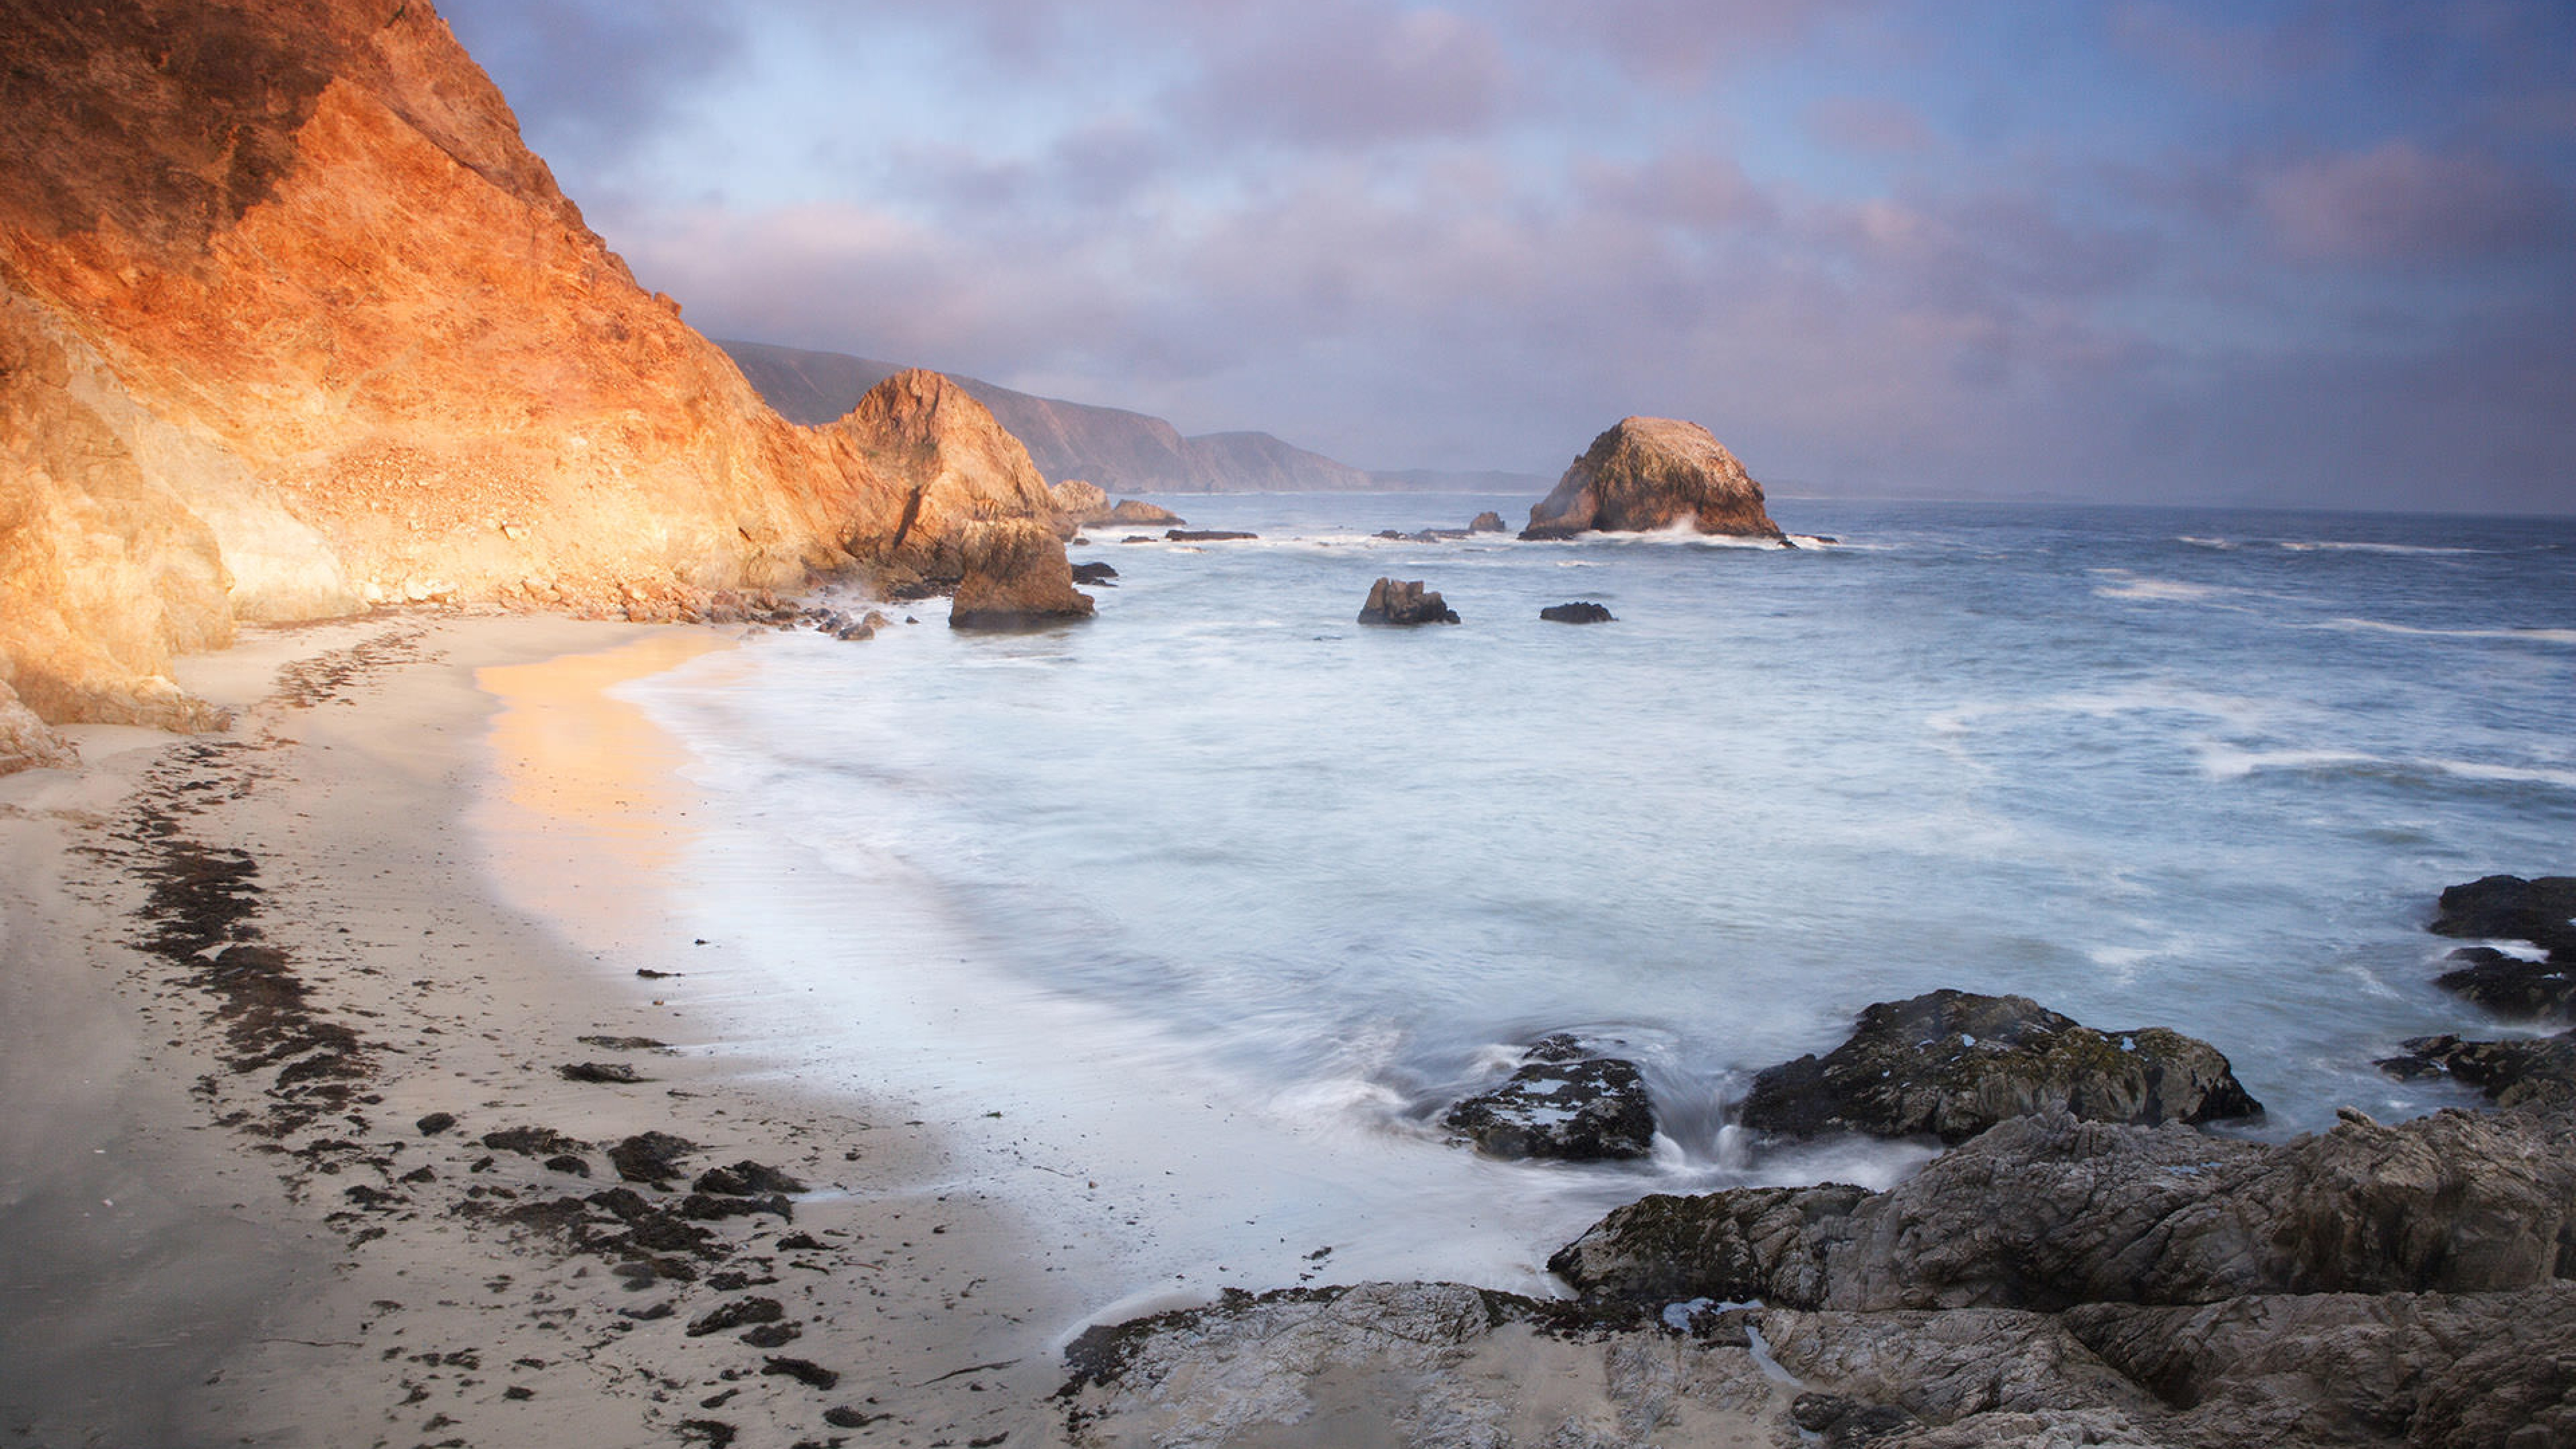 Point Reyes National Hd Wallpaper